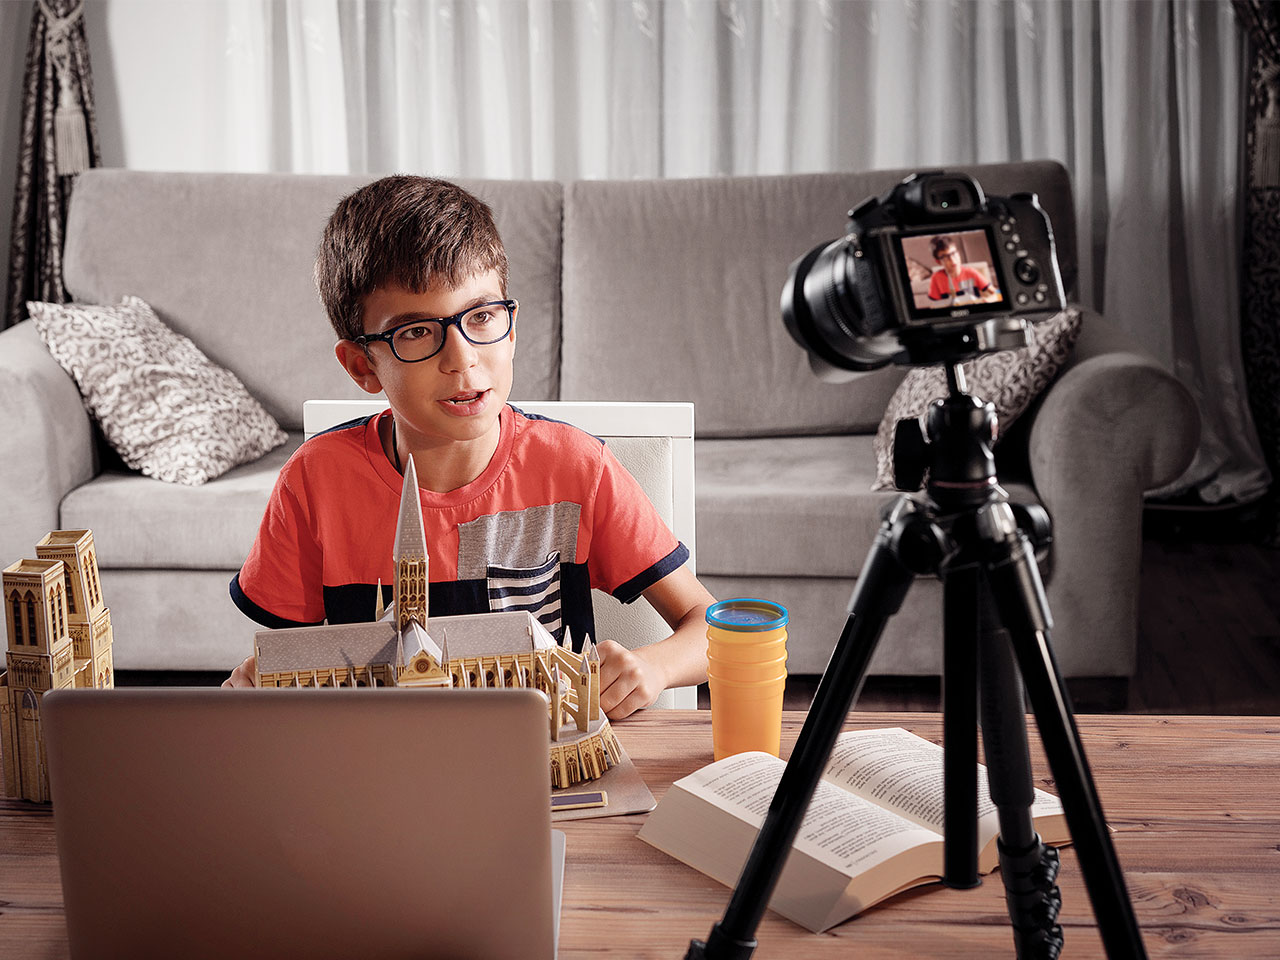 Should you let your kid make YouTube videos?